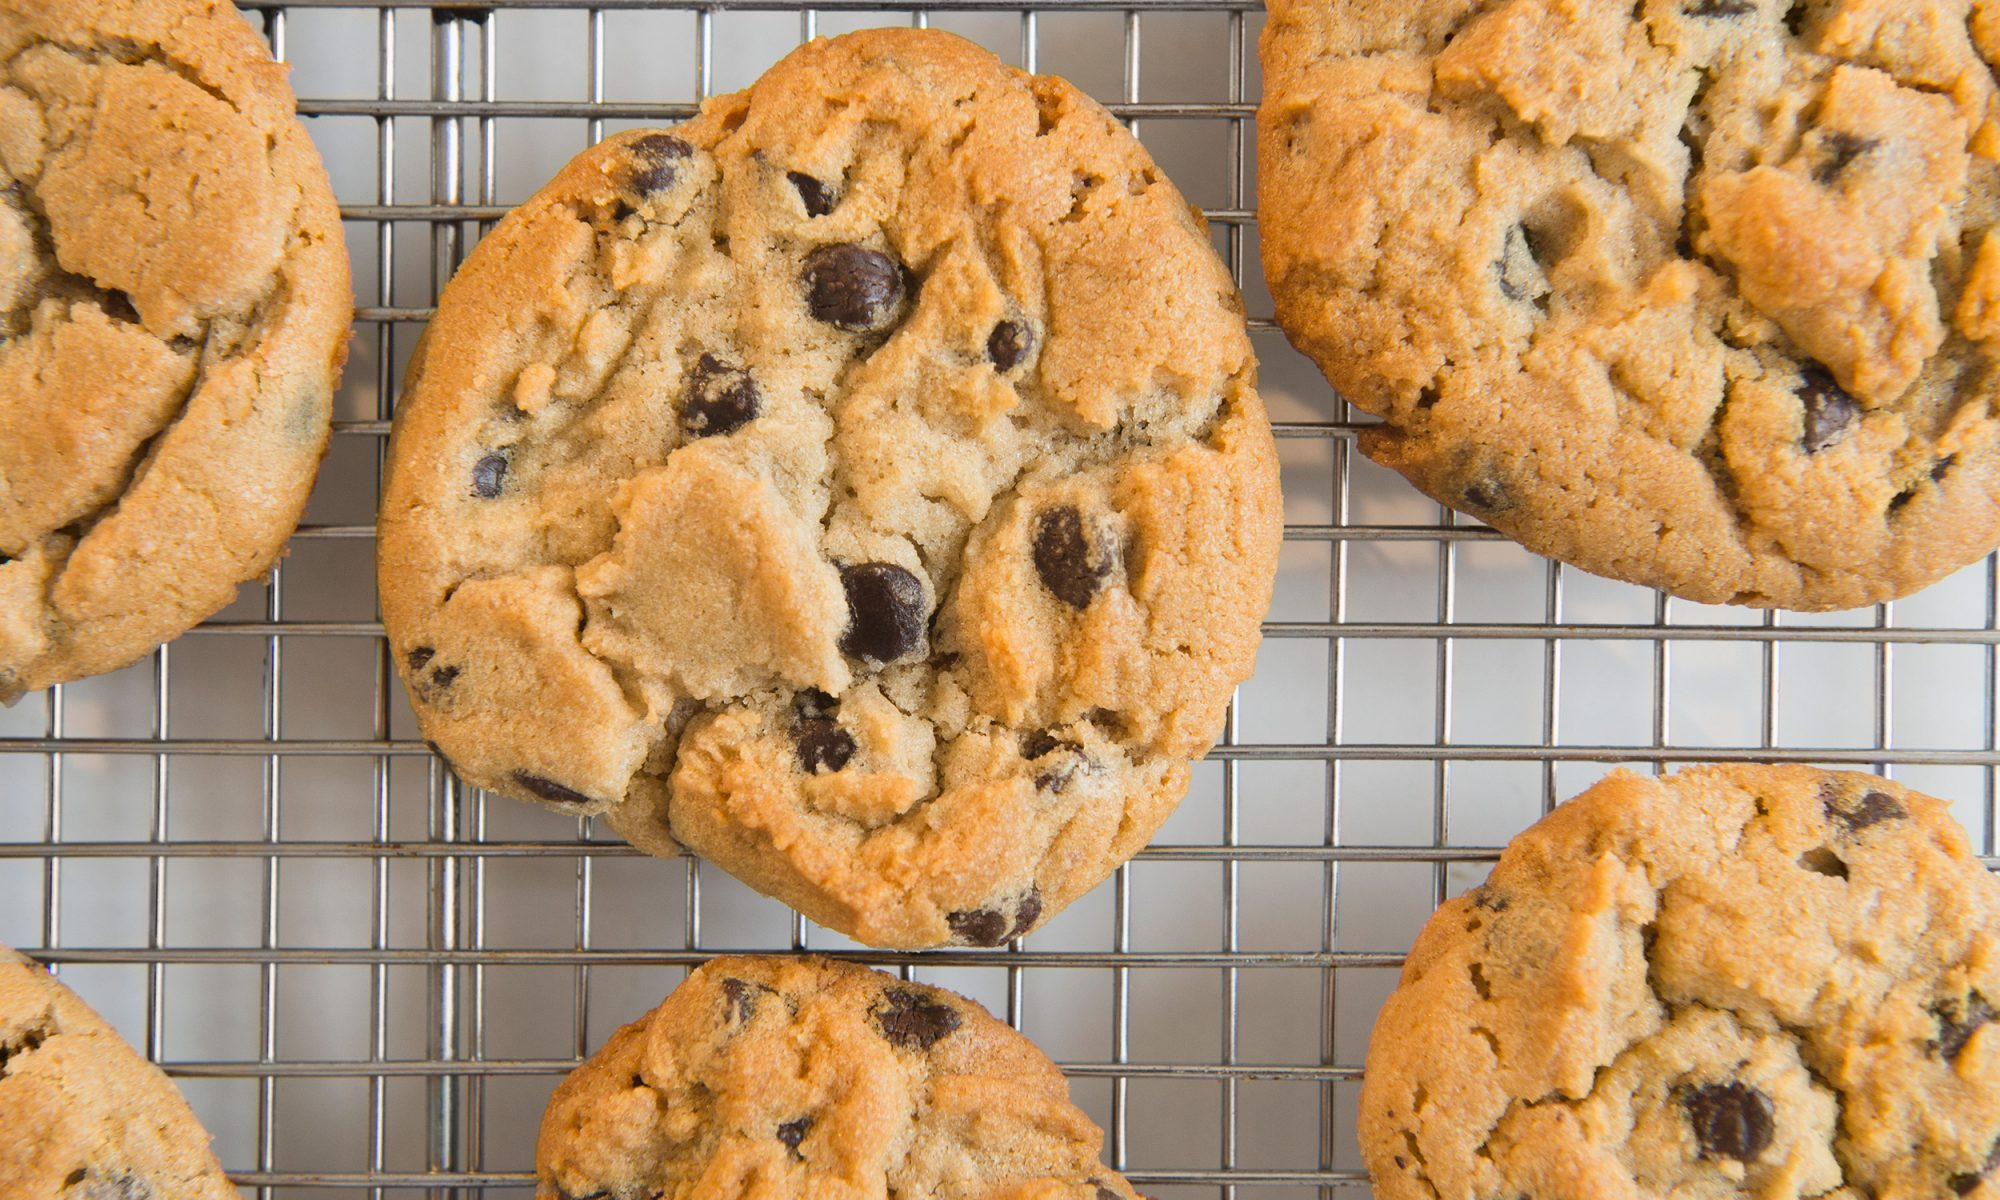 EC: Smelling Cookies Makes You More Likely to Buy Coffee